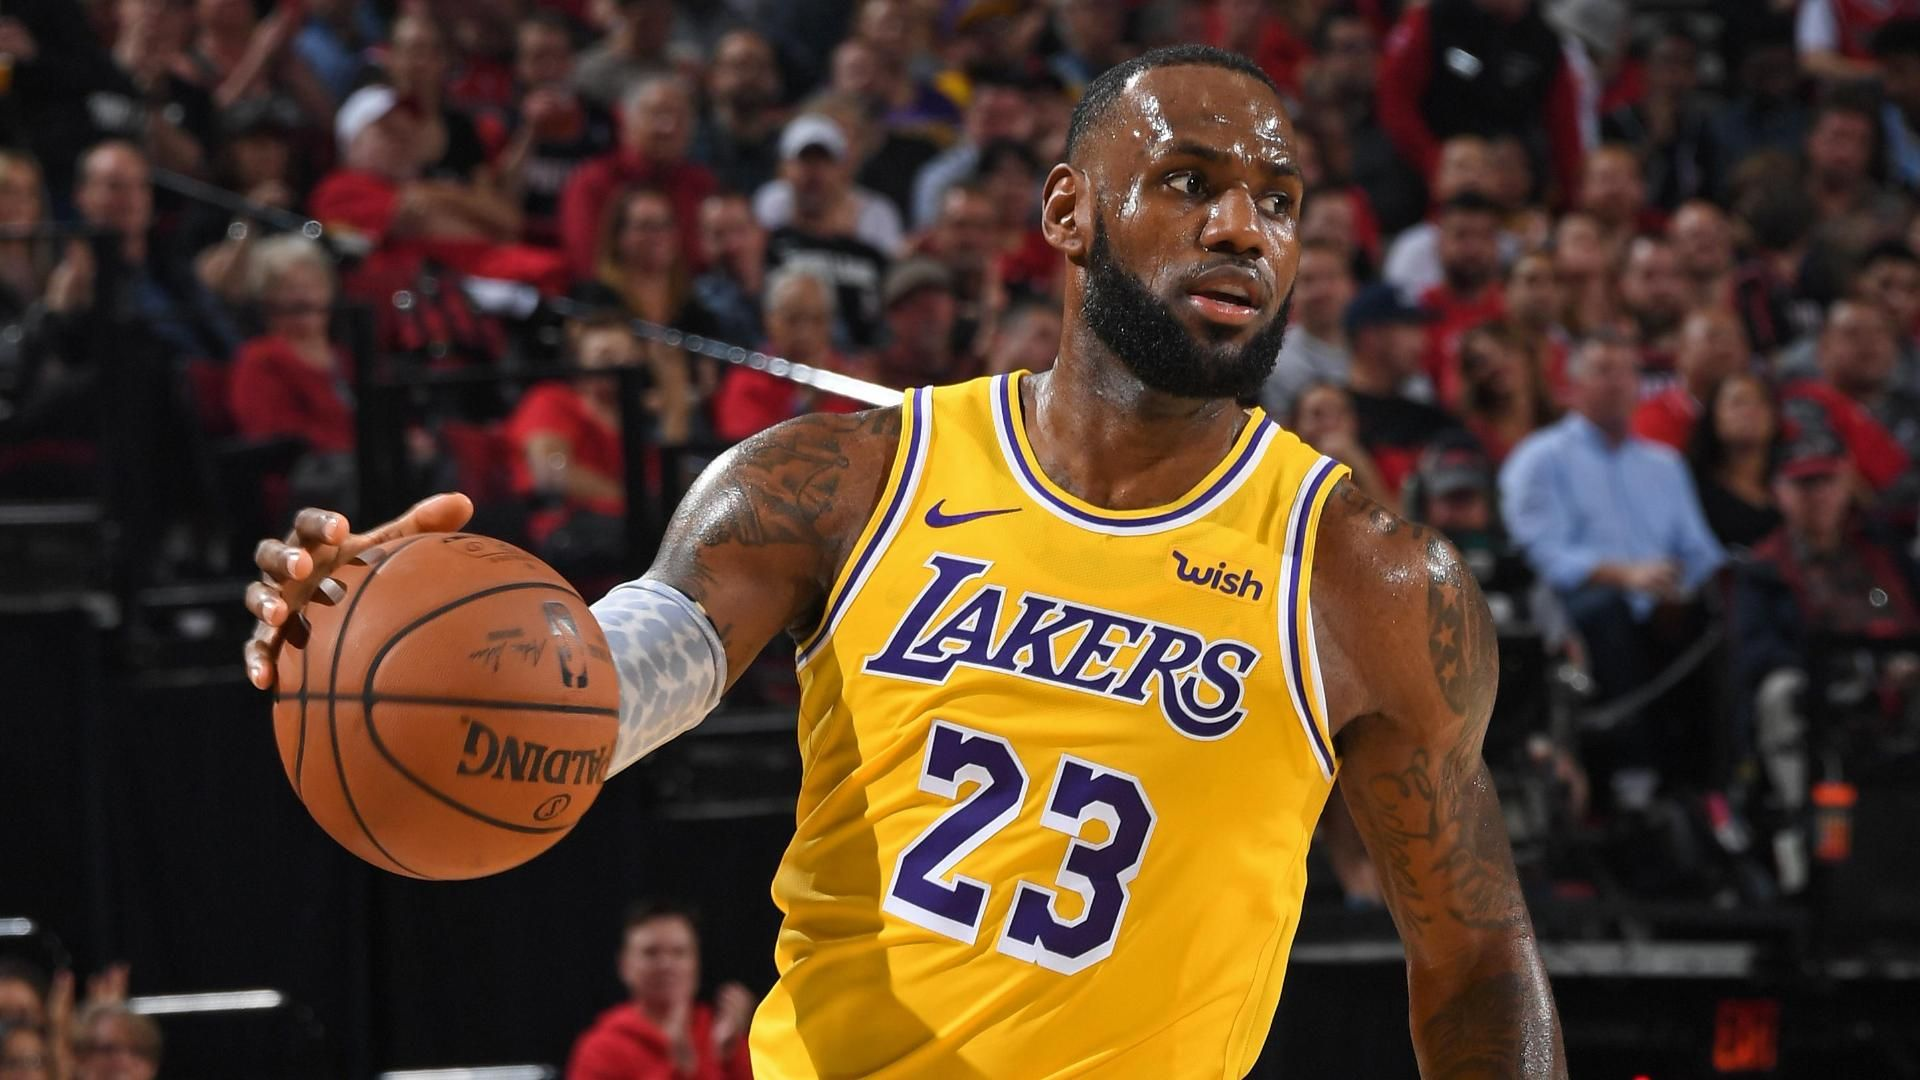 LeBron scores 26 in debut with Lakers